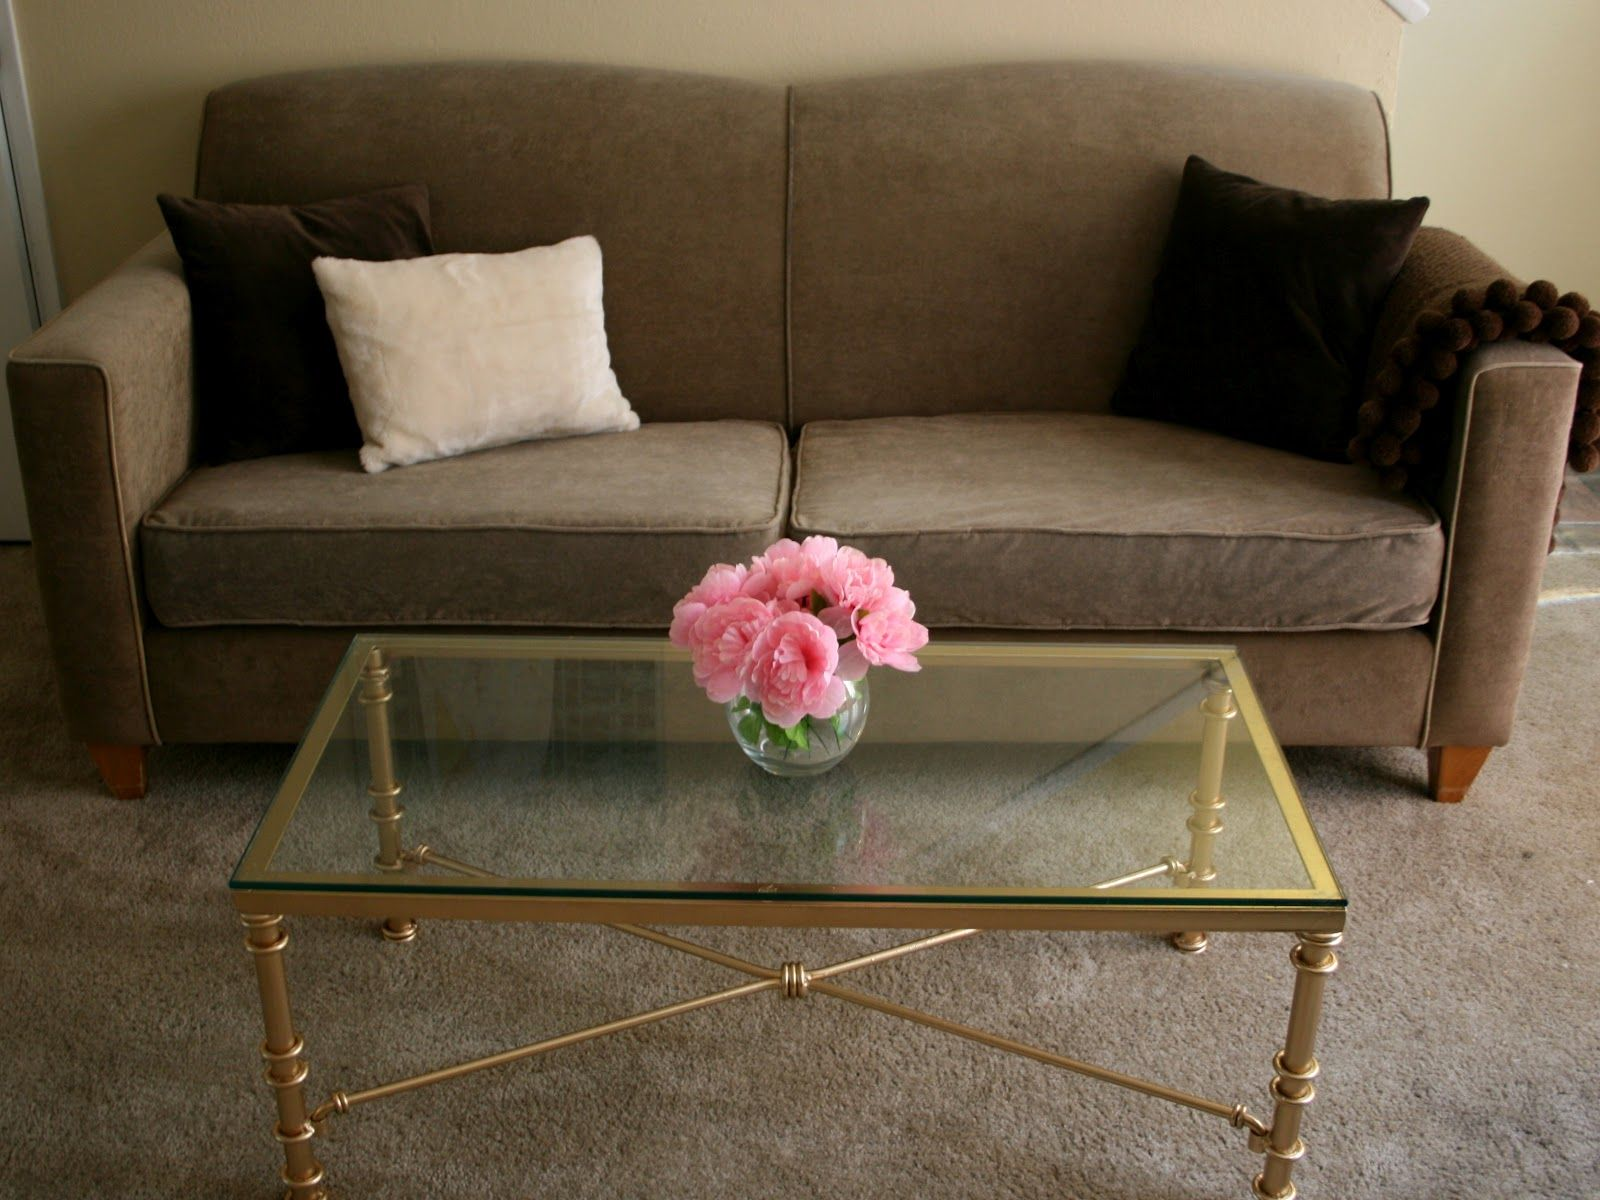 Ugly Metal Coffee Table Makeover: Success! Part 82